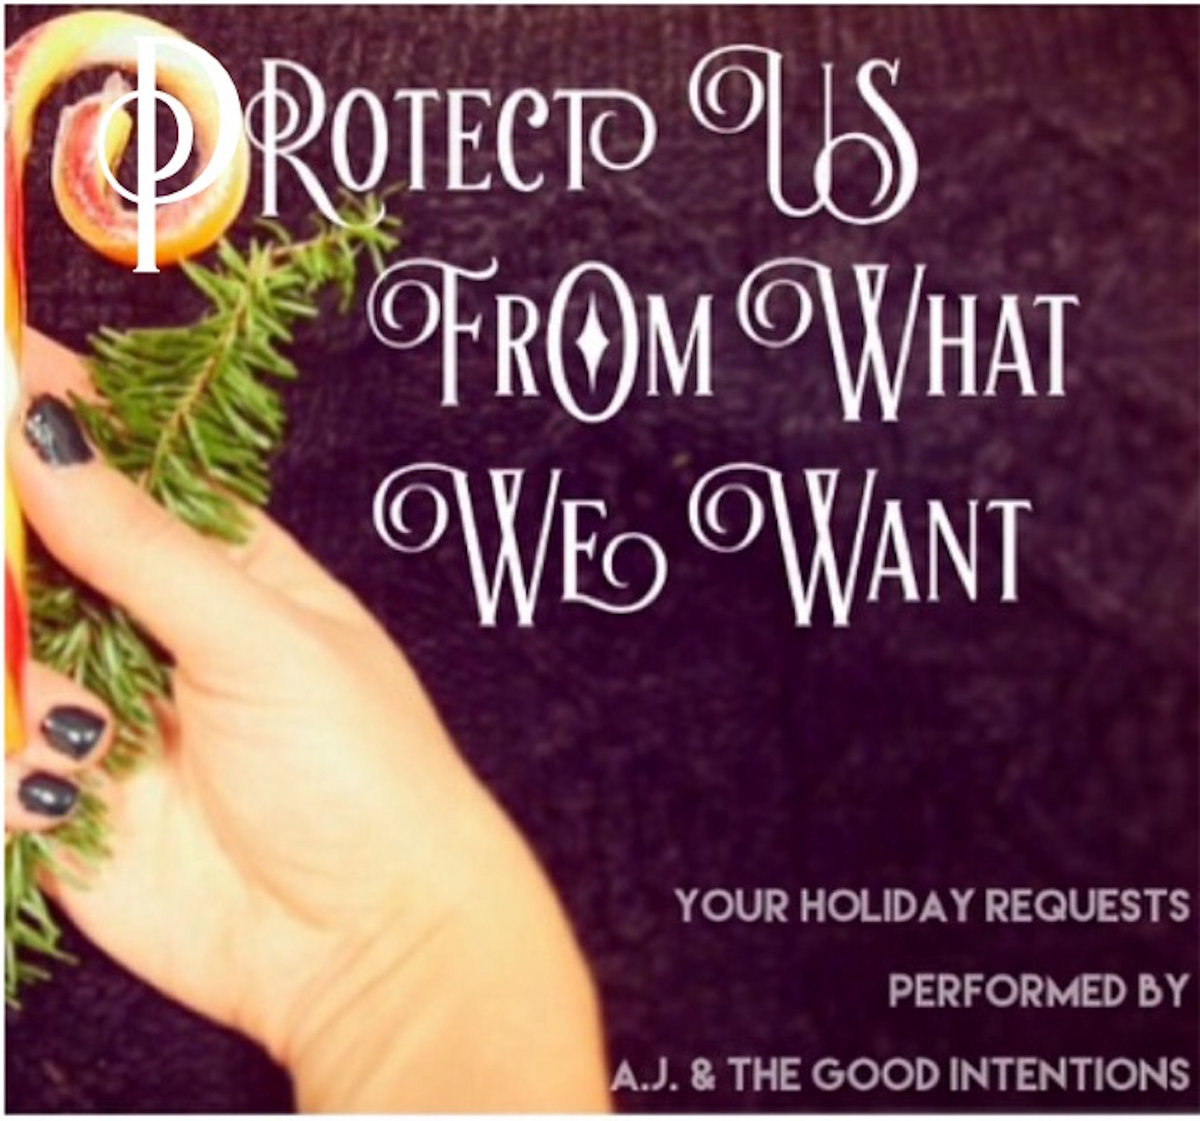 hard candy christmas dolly parton cover from protect us from what we want your holiday requests performed by aj the good intentions by aj the - Dolly Parton Hard Candy Christmas